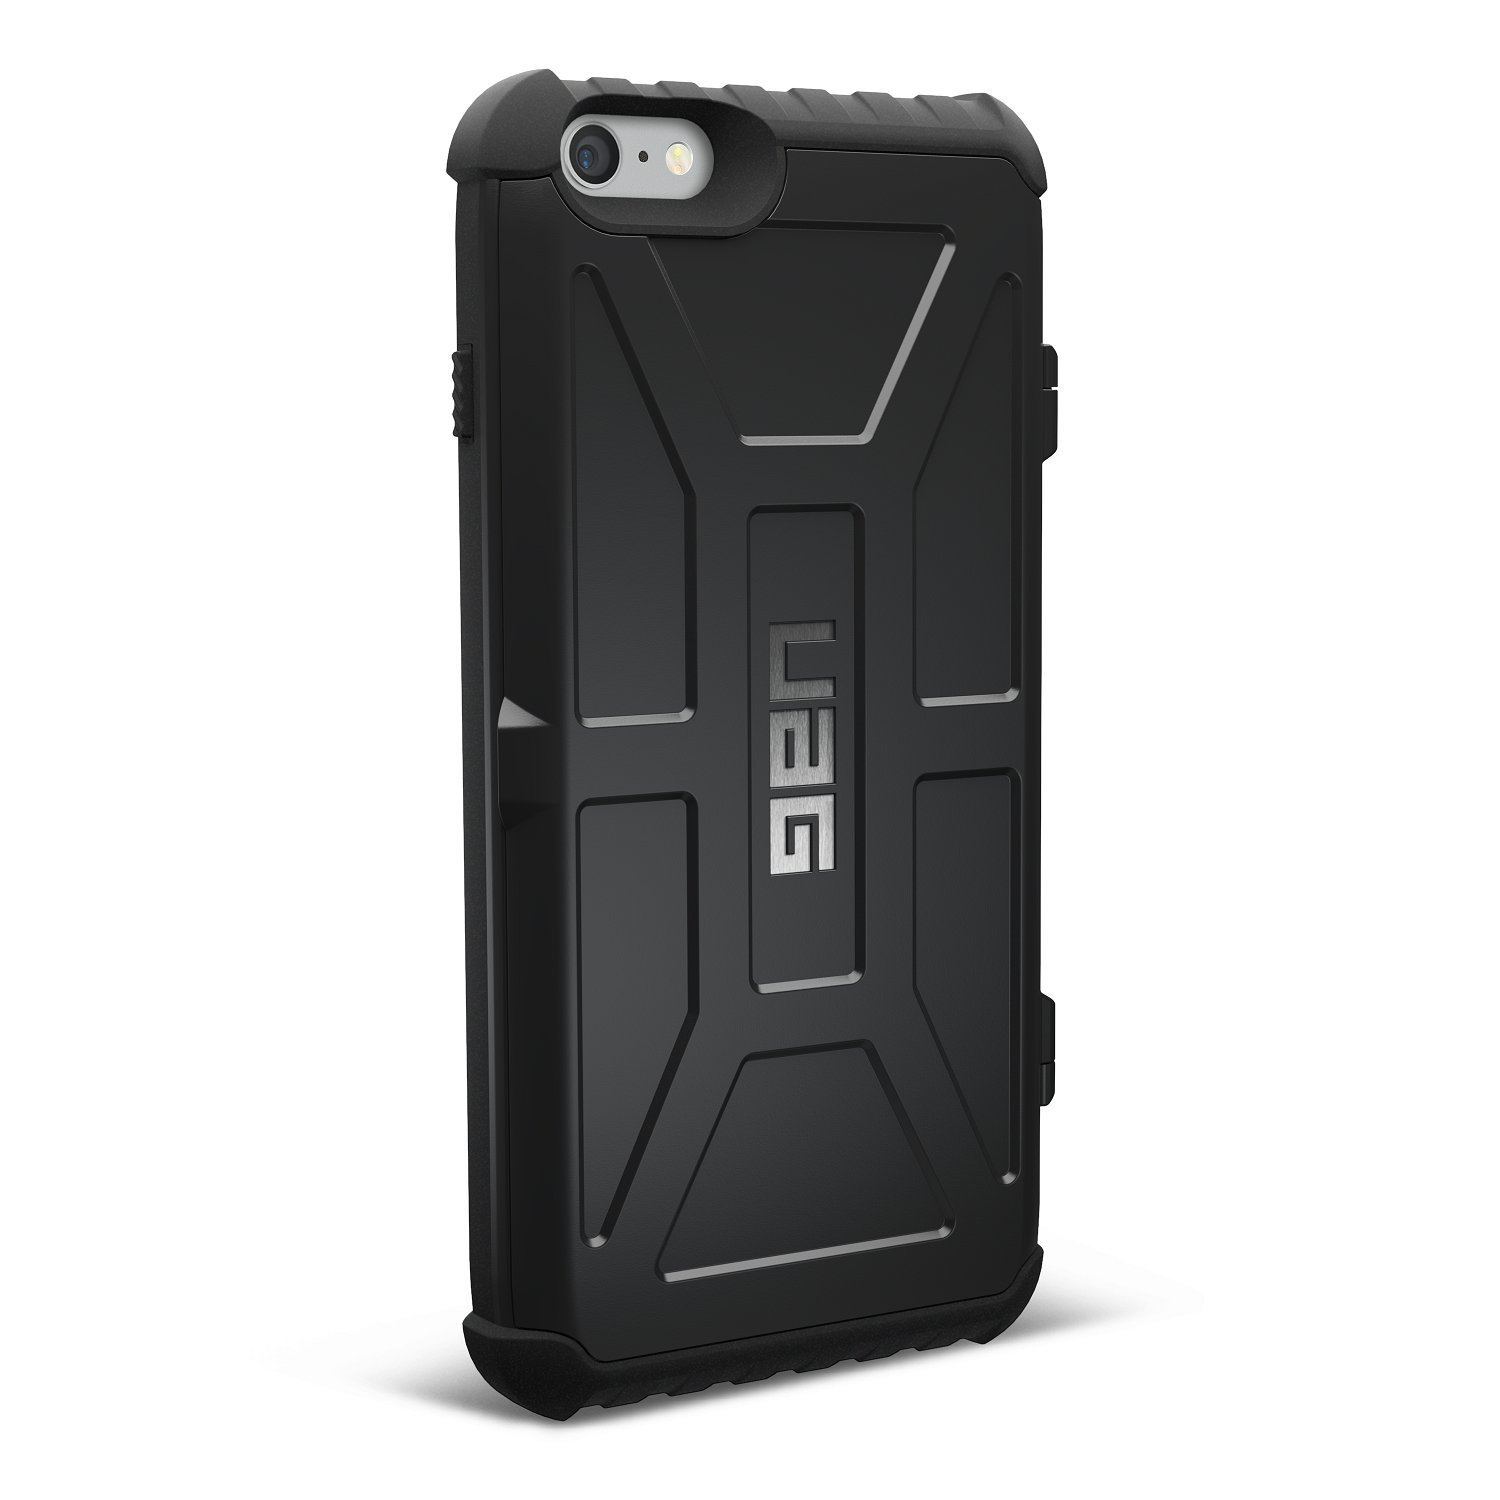 UAG Trooper Θήκη με Θέση για Κάρτες iPhone 6S Plus / 6 Plus - Black (IPH6/6SPL-N-BLK)